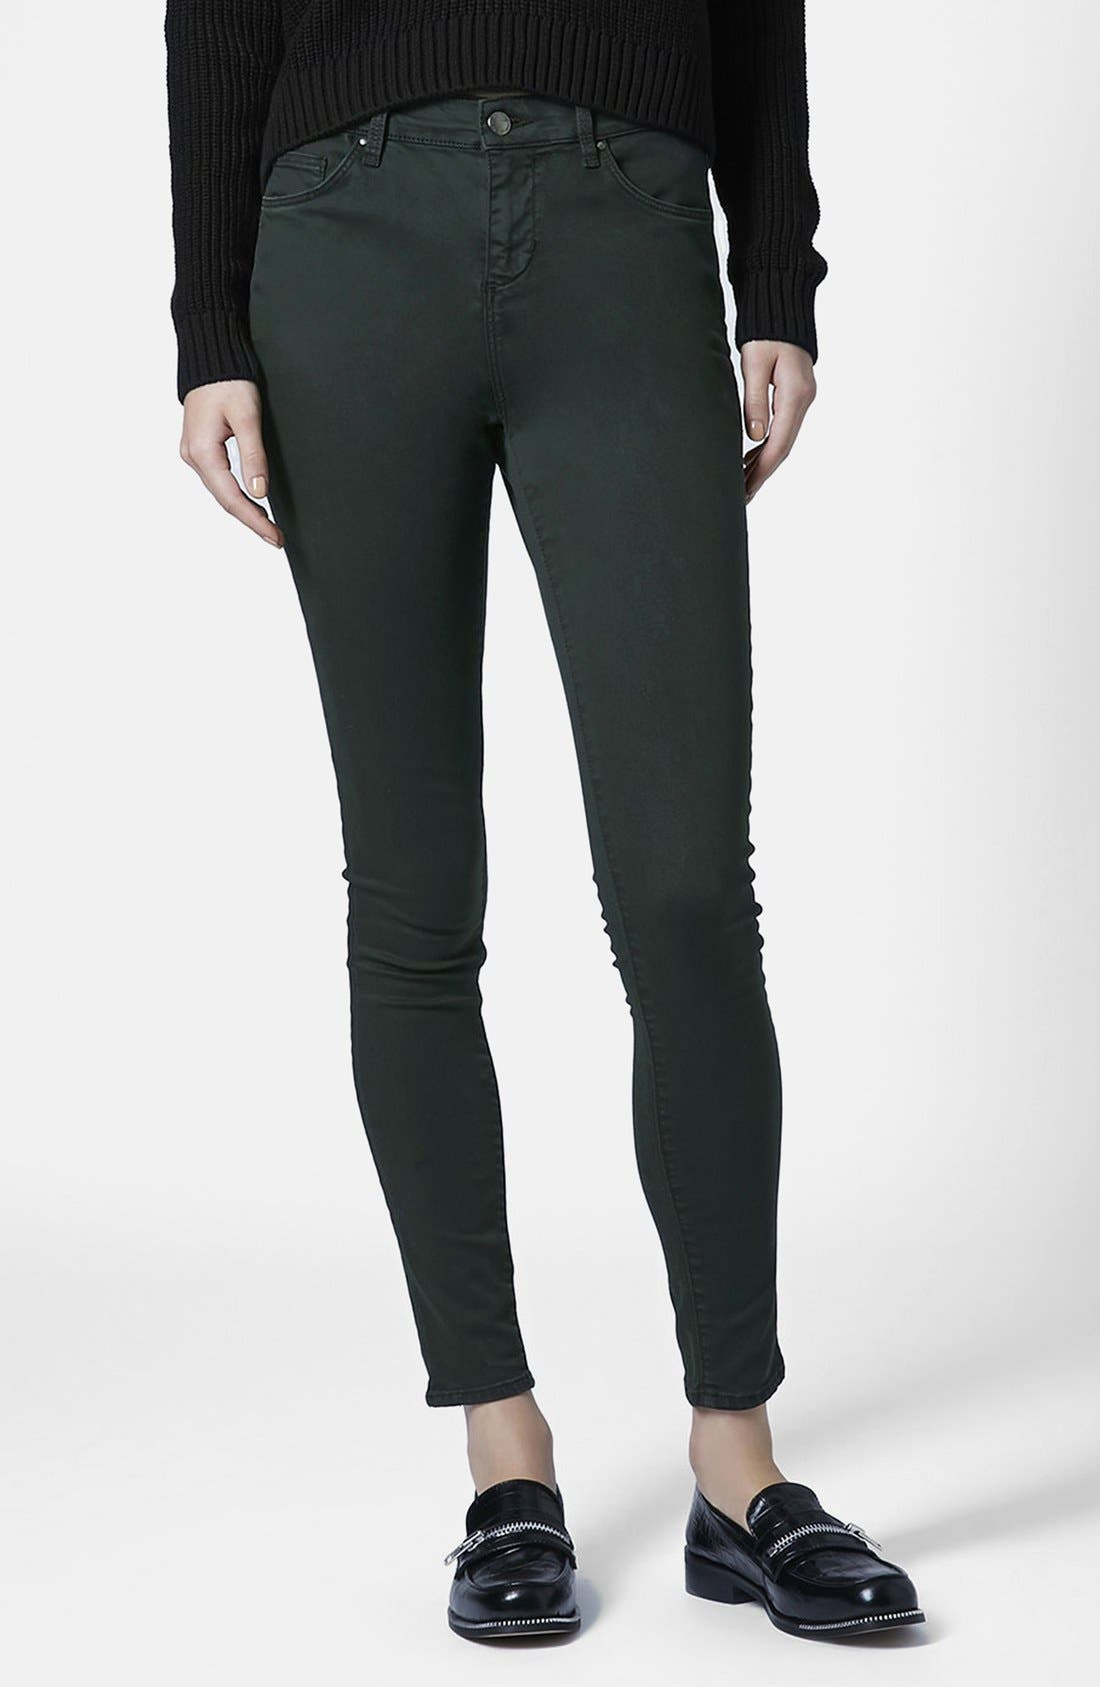 Alternate Image 1 Selected - Topshop Moto 'Leigh' Forest Jeans (Dark Green)